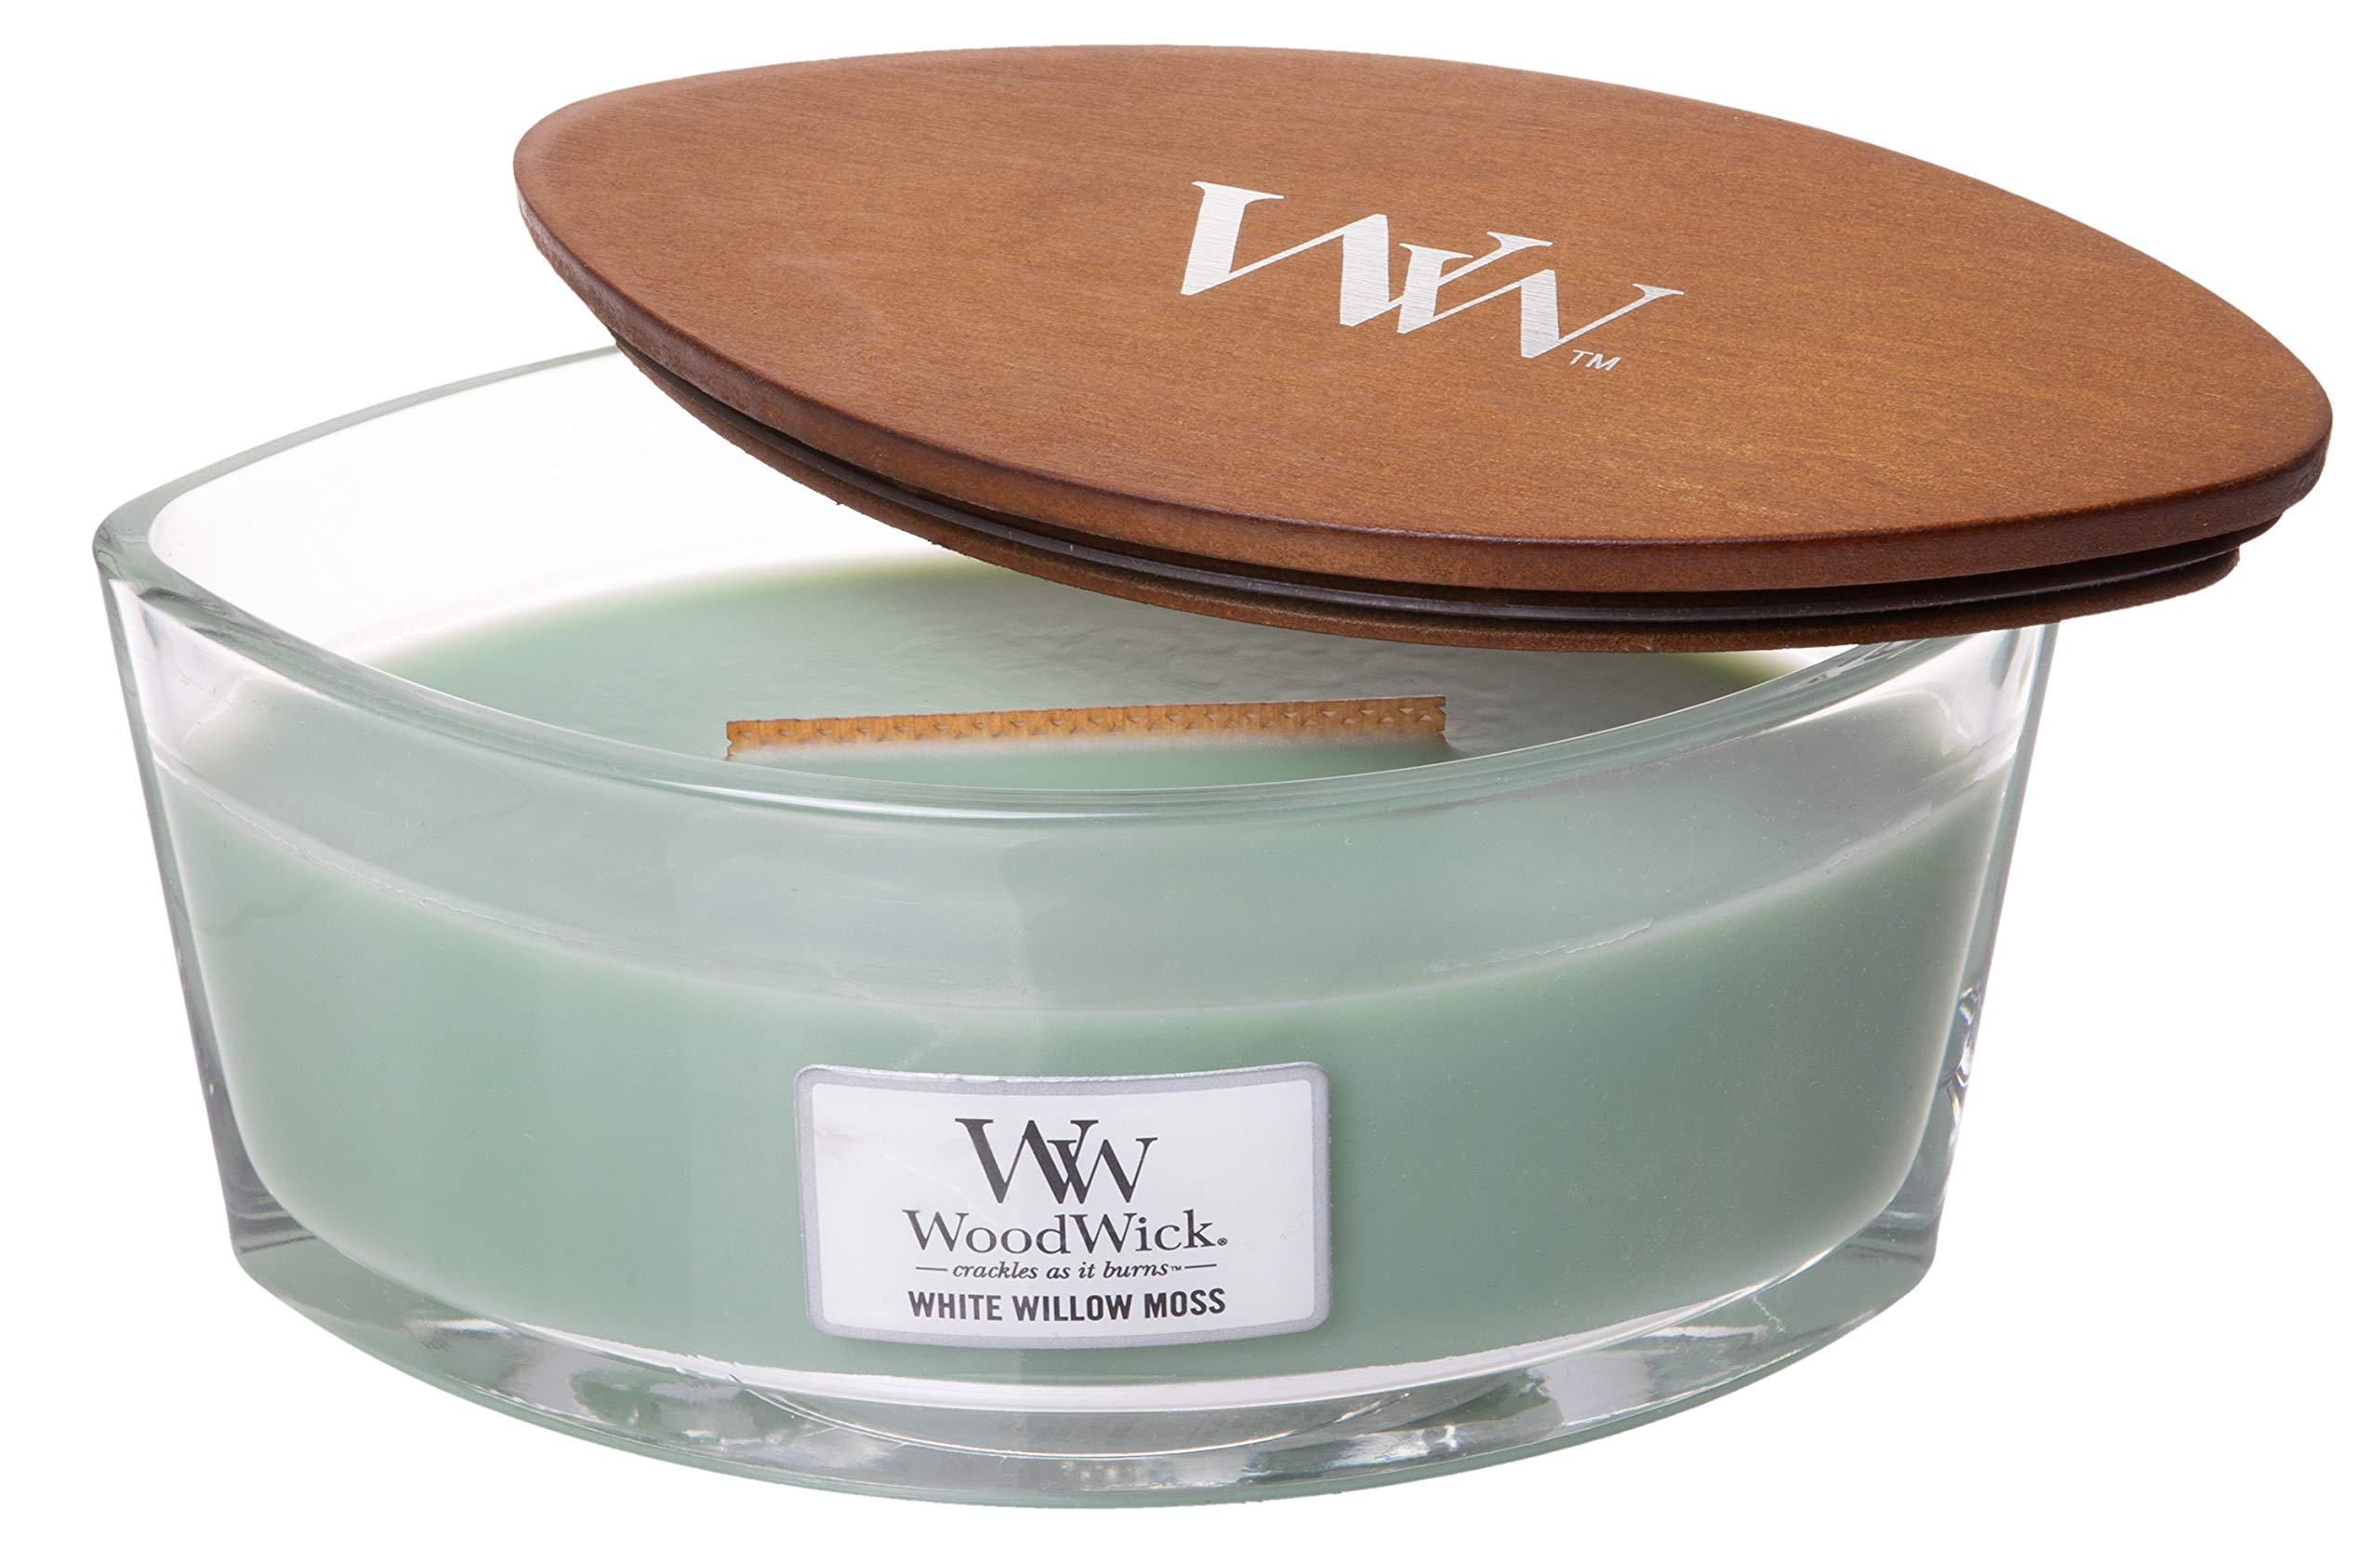 WoodWick WW White Willow Moss, Highly Scented Candle, Classic Ellipse Glass Jar with Original HearthWick Flame, Large 7 Inches, 16 OZ